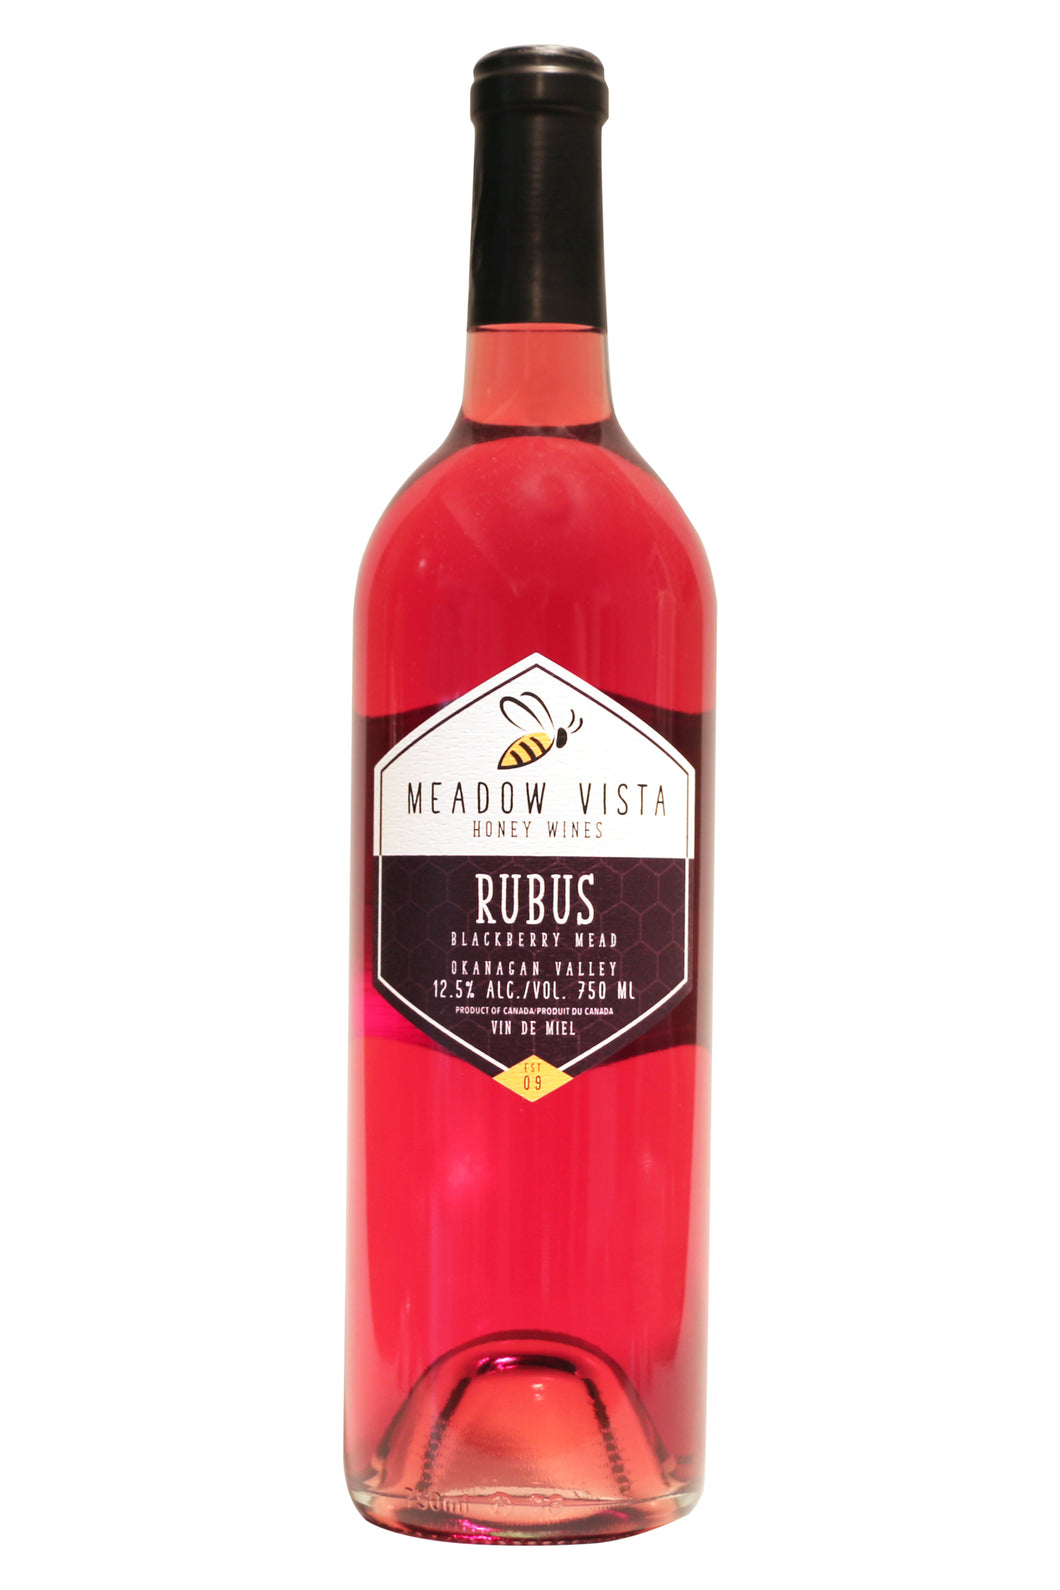 Meadow Vista Honey Wines Rubus Blackberry Melomel 750 ml